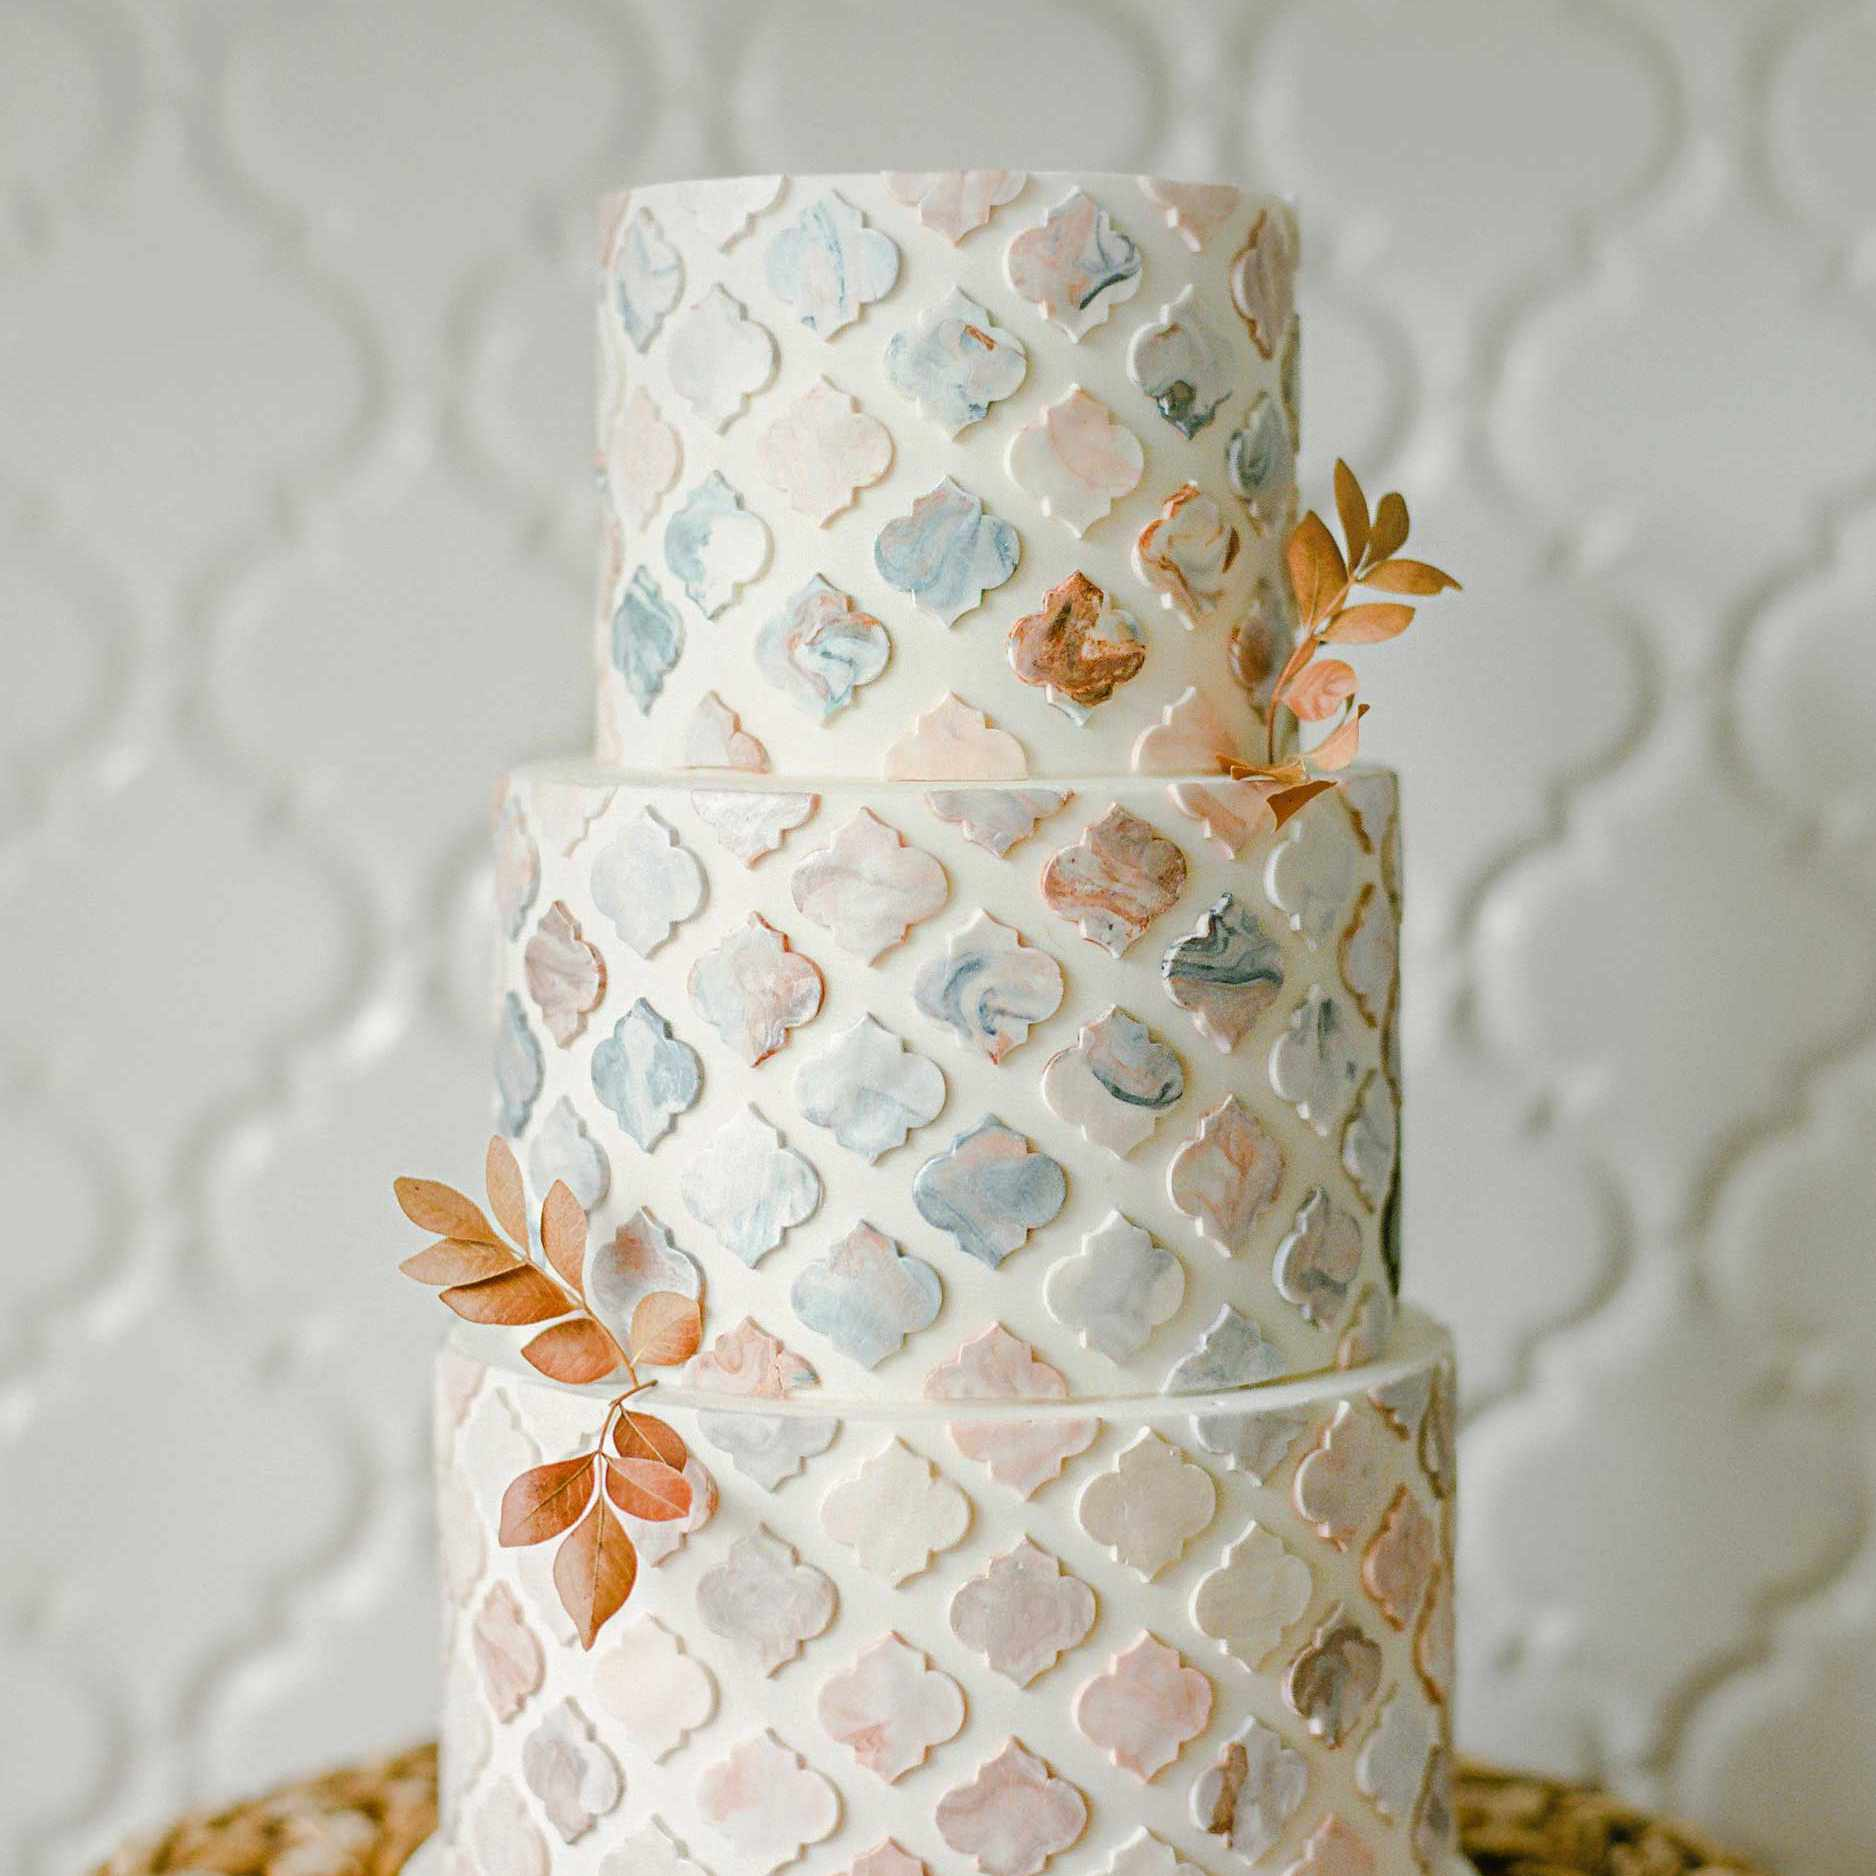 Fall themed wedding cake with hand-painted tile design